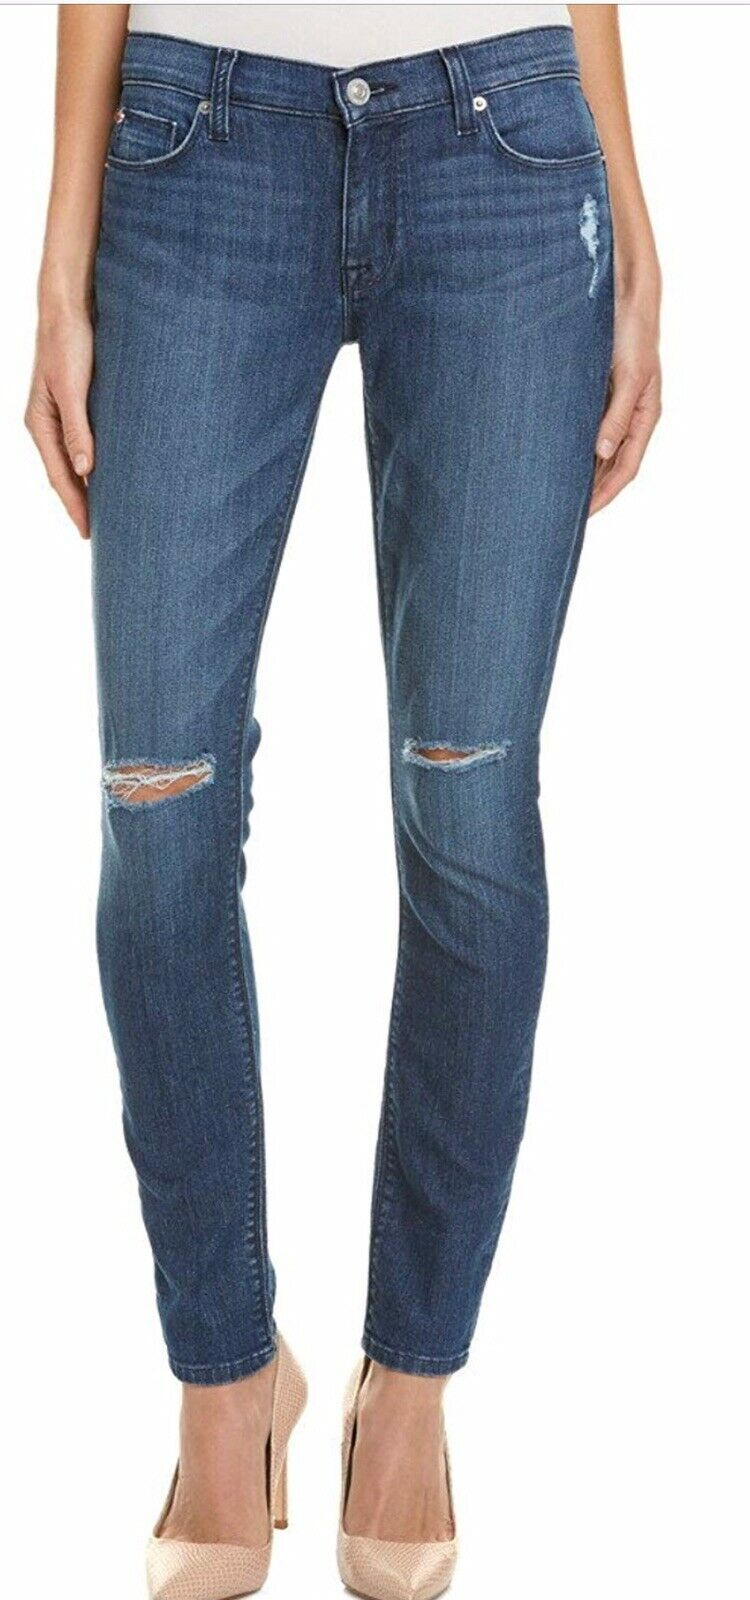 AUTHENTIC HUDSON  KRISTA SUPER SKINNY STRETCH RIPPED JEANS NICE   32 14